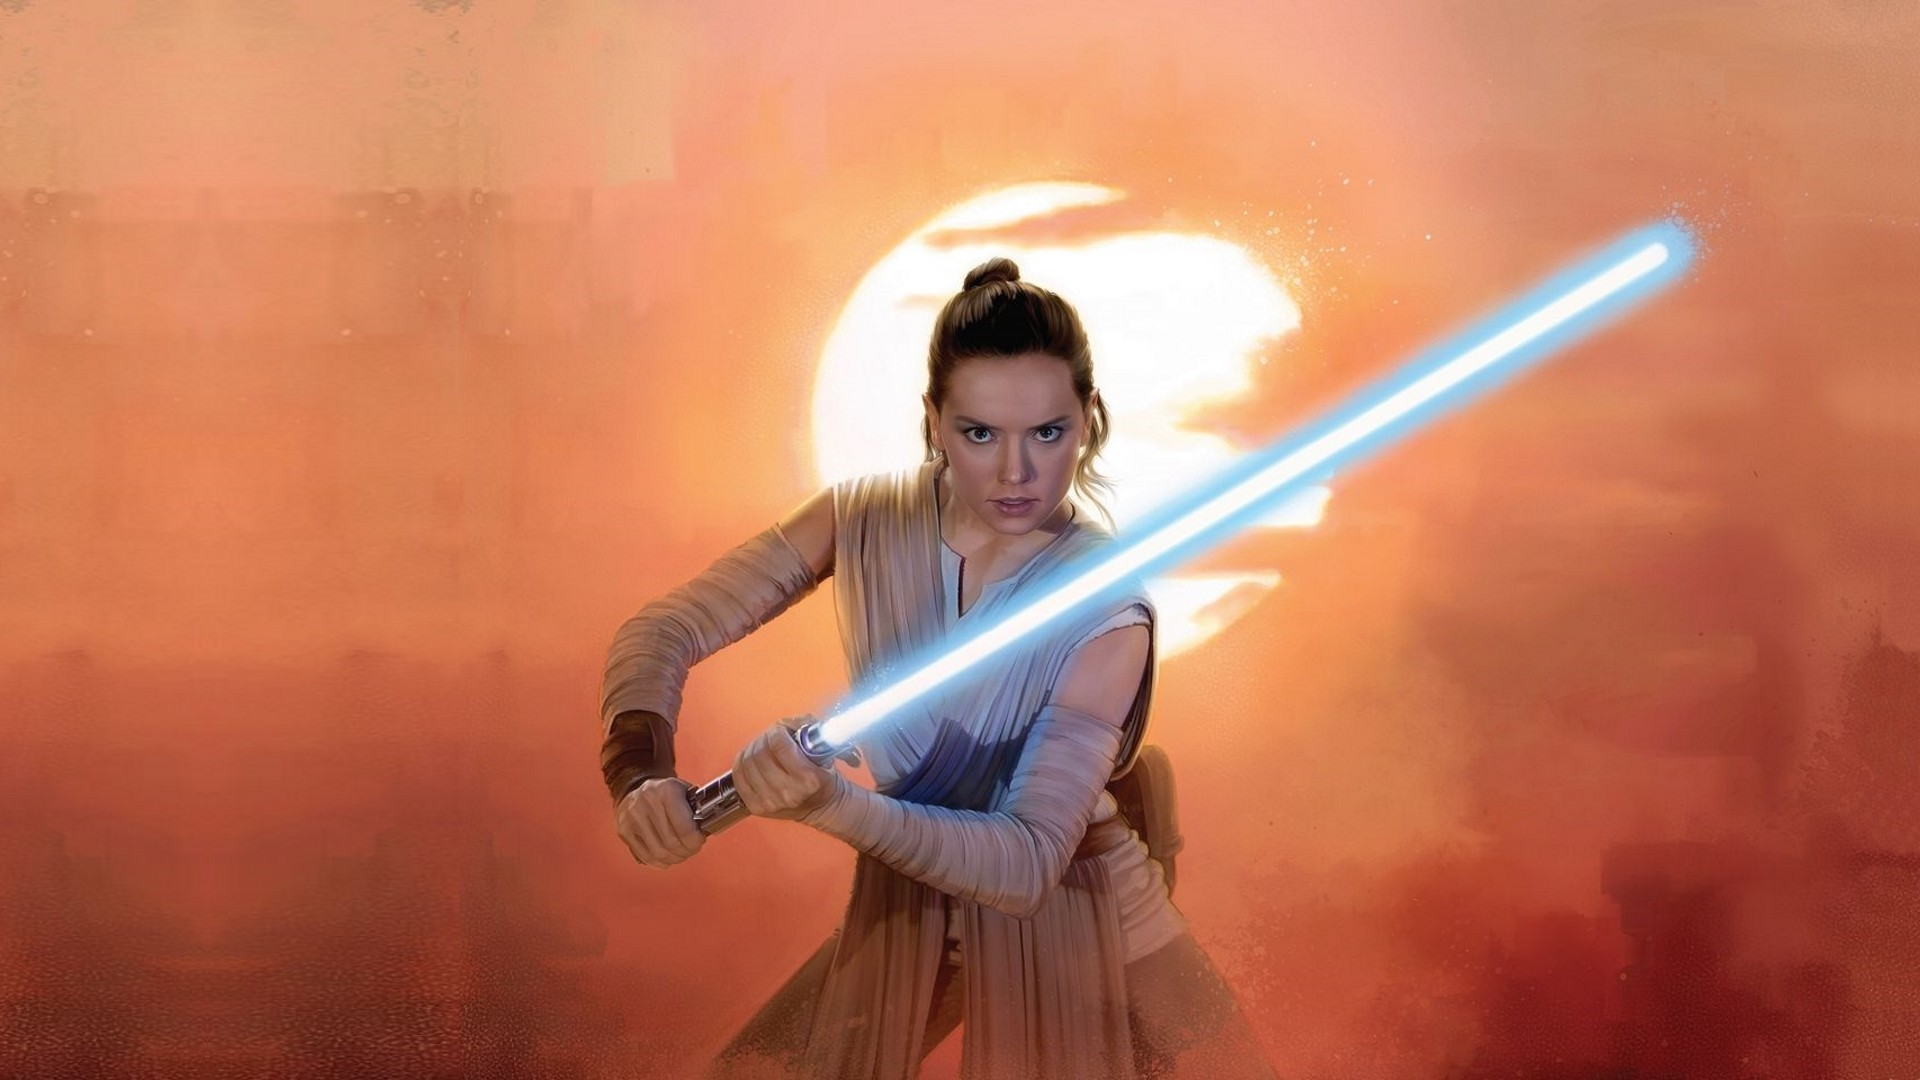 Daisy Ridley Rey Star Wars Lightsaber Jedi Wallpapers Star